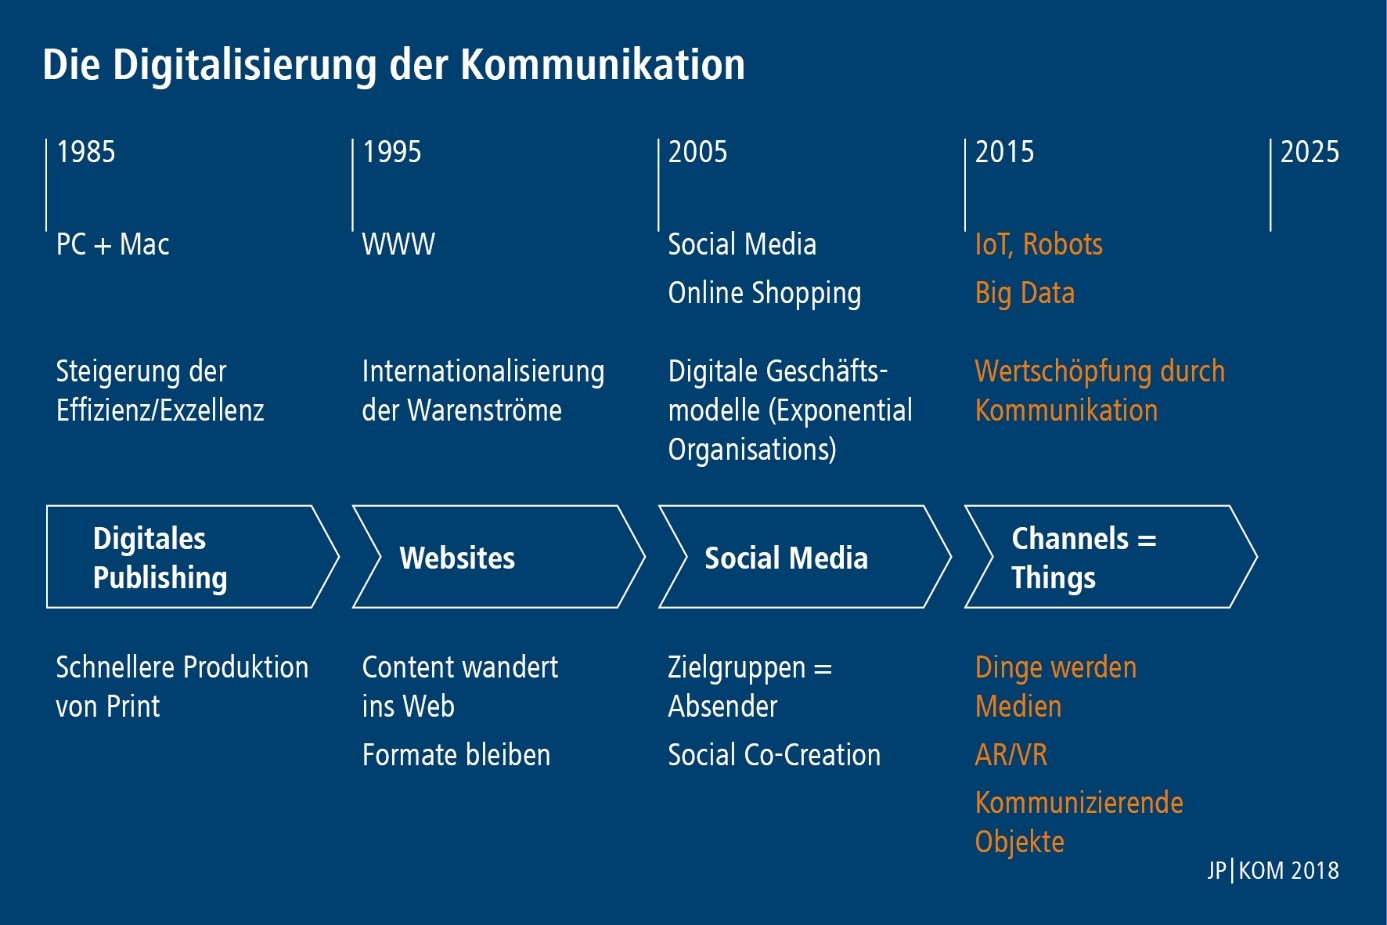 JP Kom Digitalisierung Kommunikation Grafik